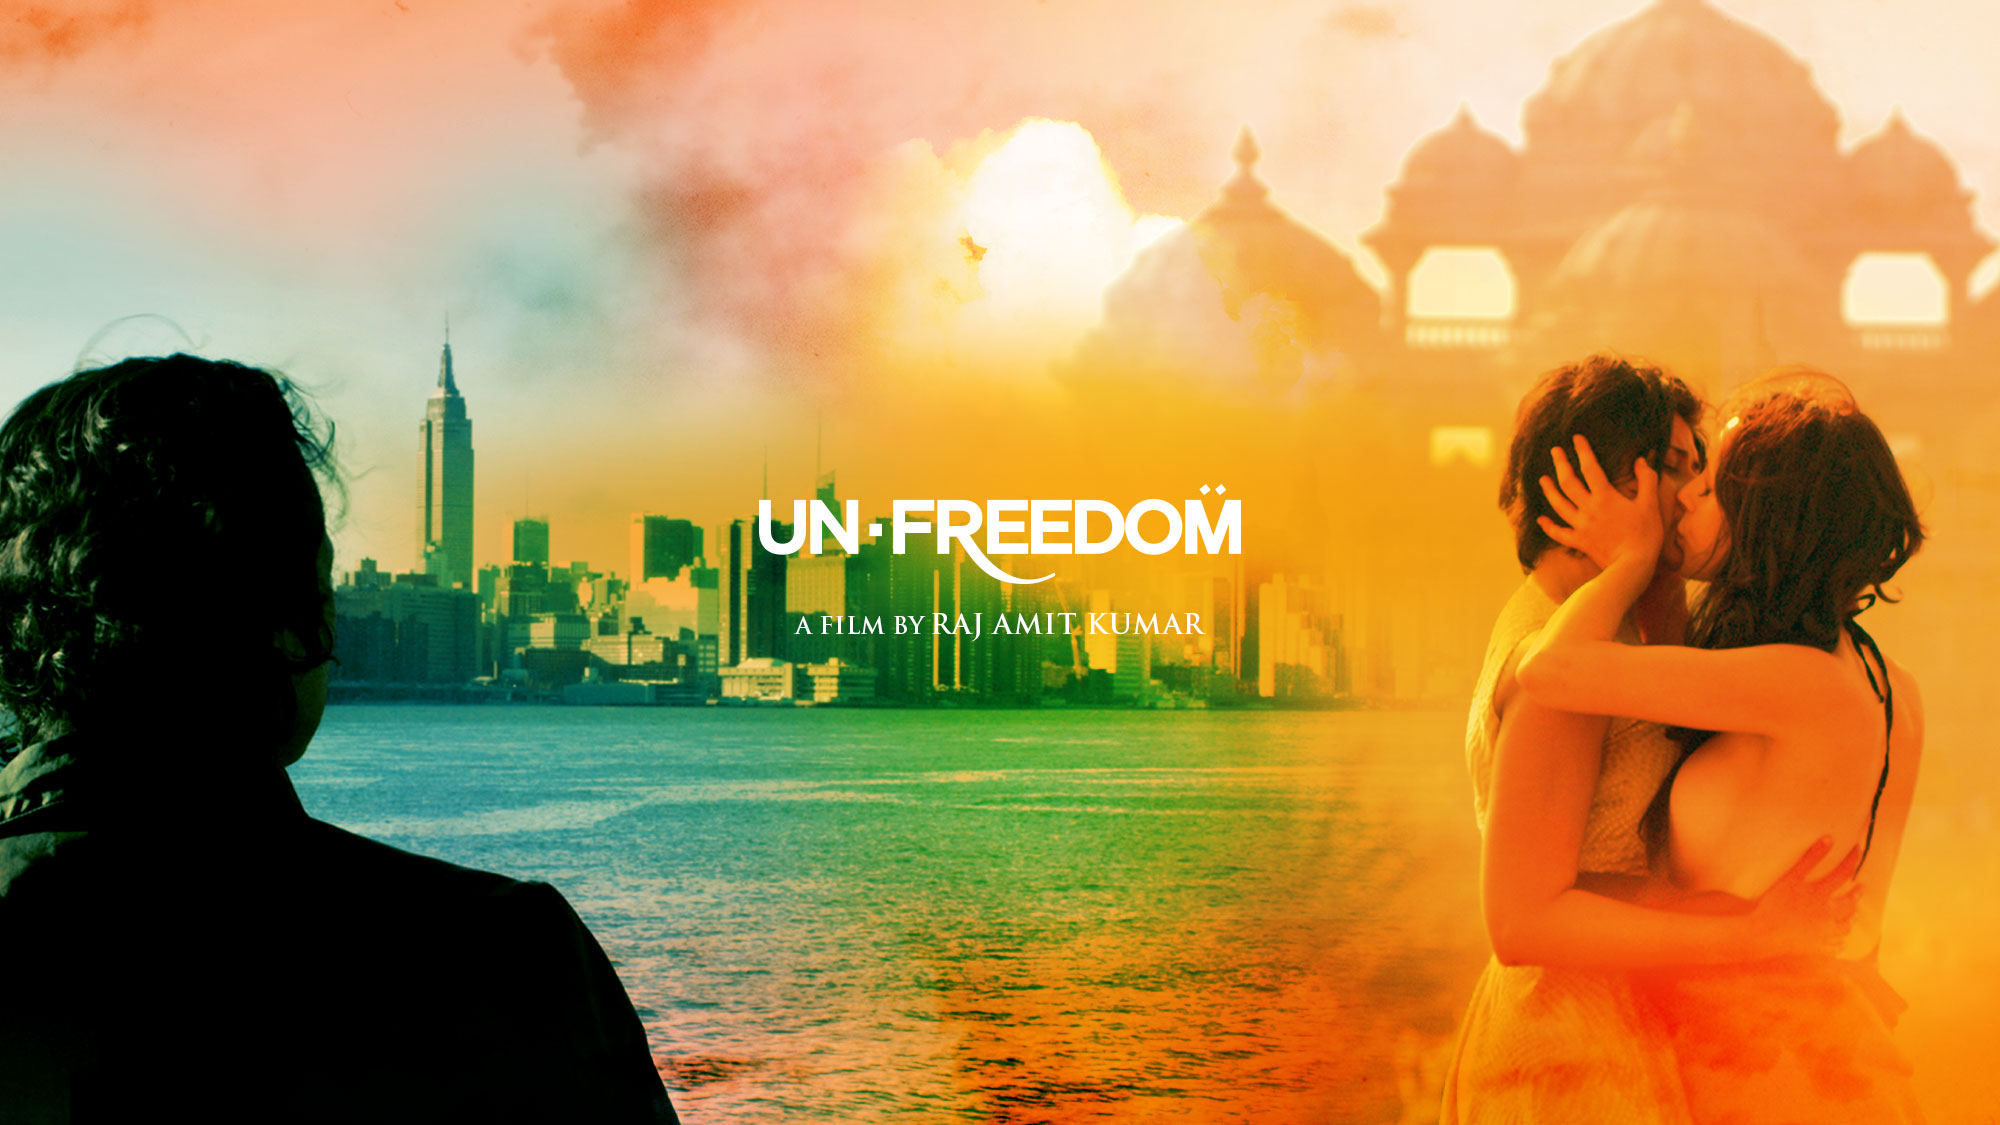 Unfreedom the movie